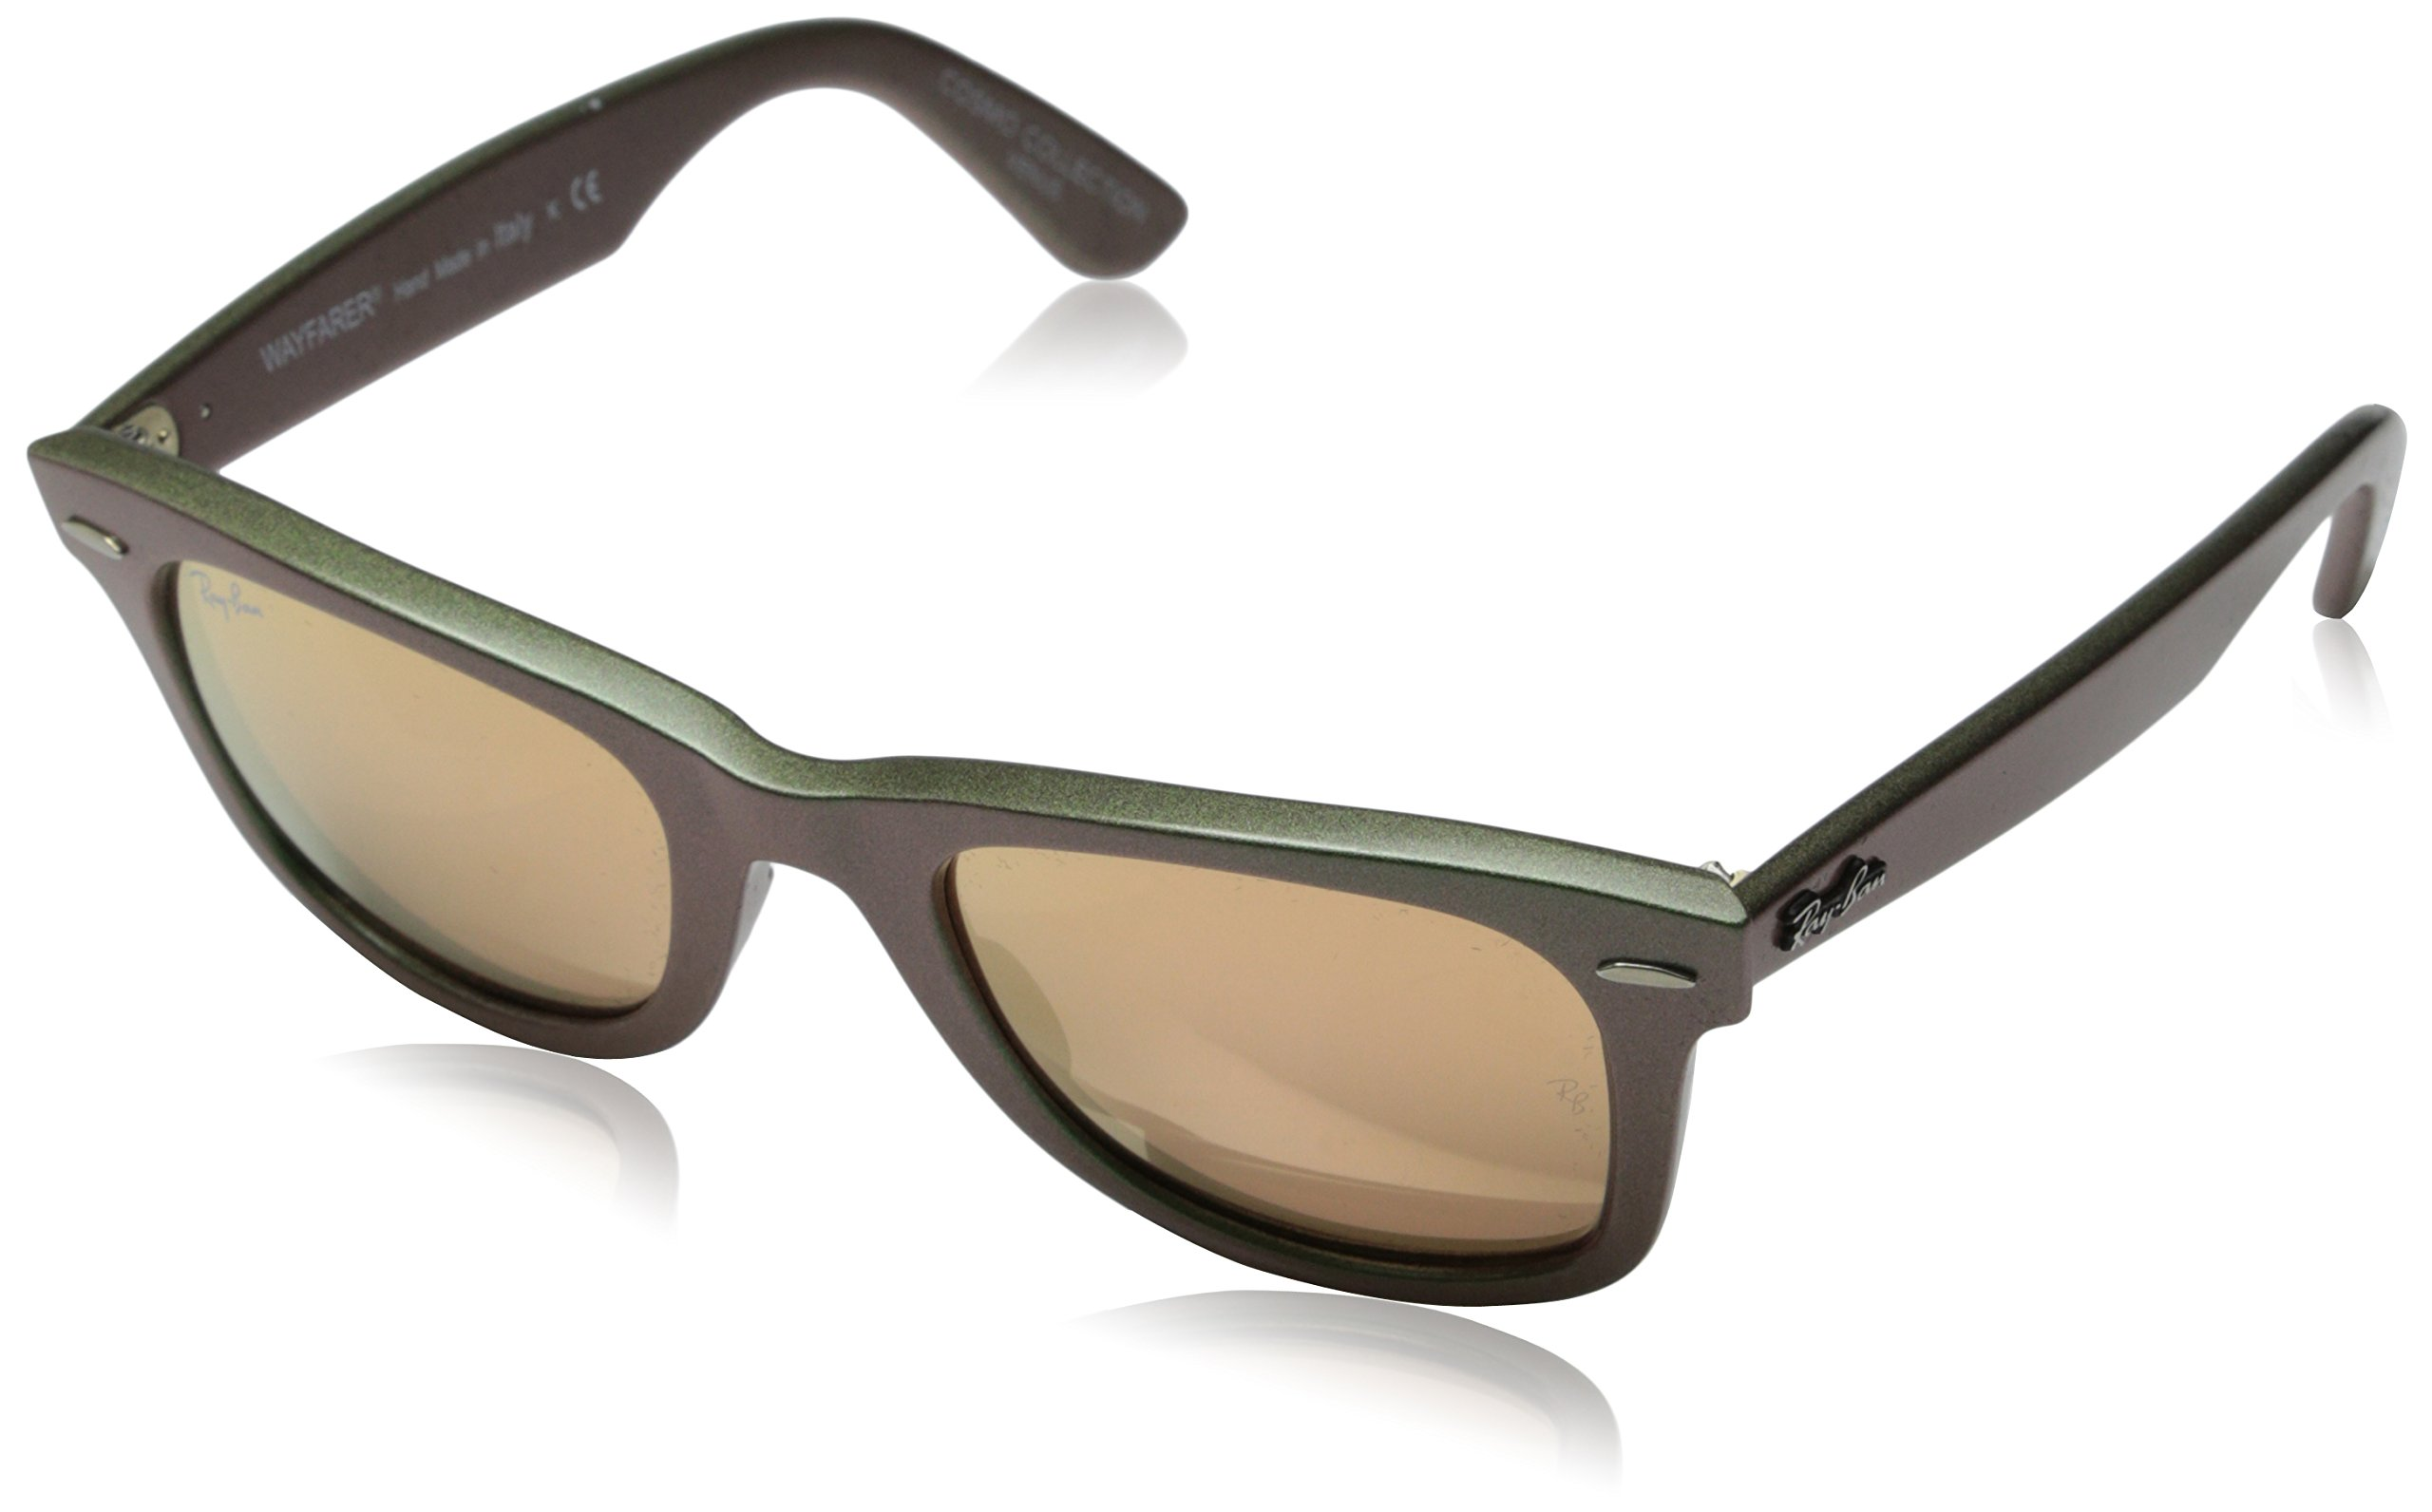 Ray-Ban RB2140-6109Z2 Sunglasses Pink, Green w/Bright Copper Lens 50mm